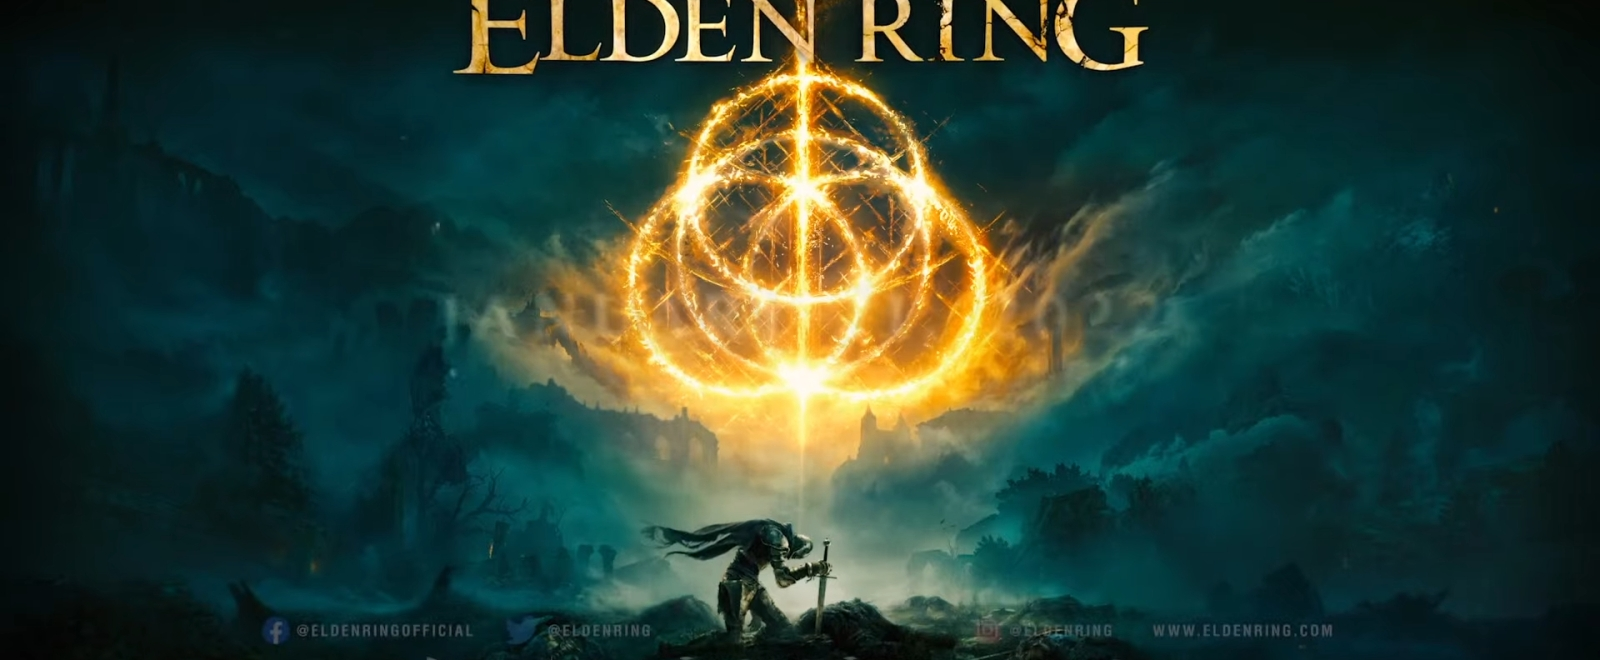 'Elden Ring' — A Collaboration Between George R.R. Martin And FromSoftware — Now Has A Full Trailer And Release Date